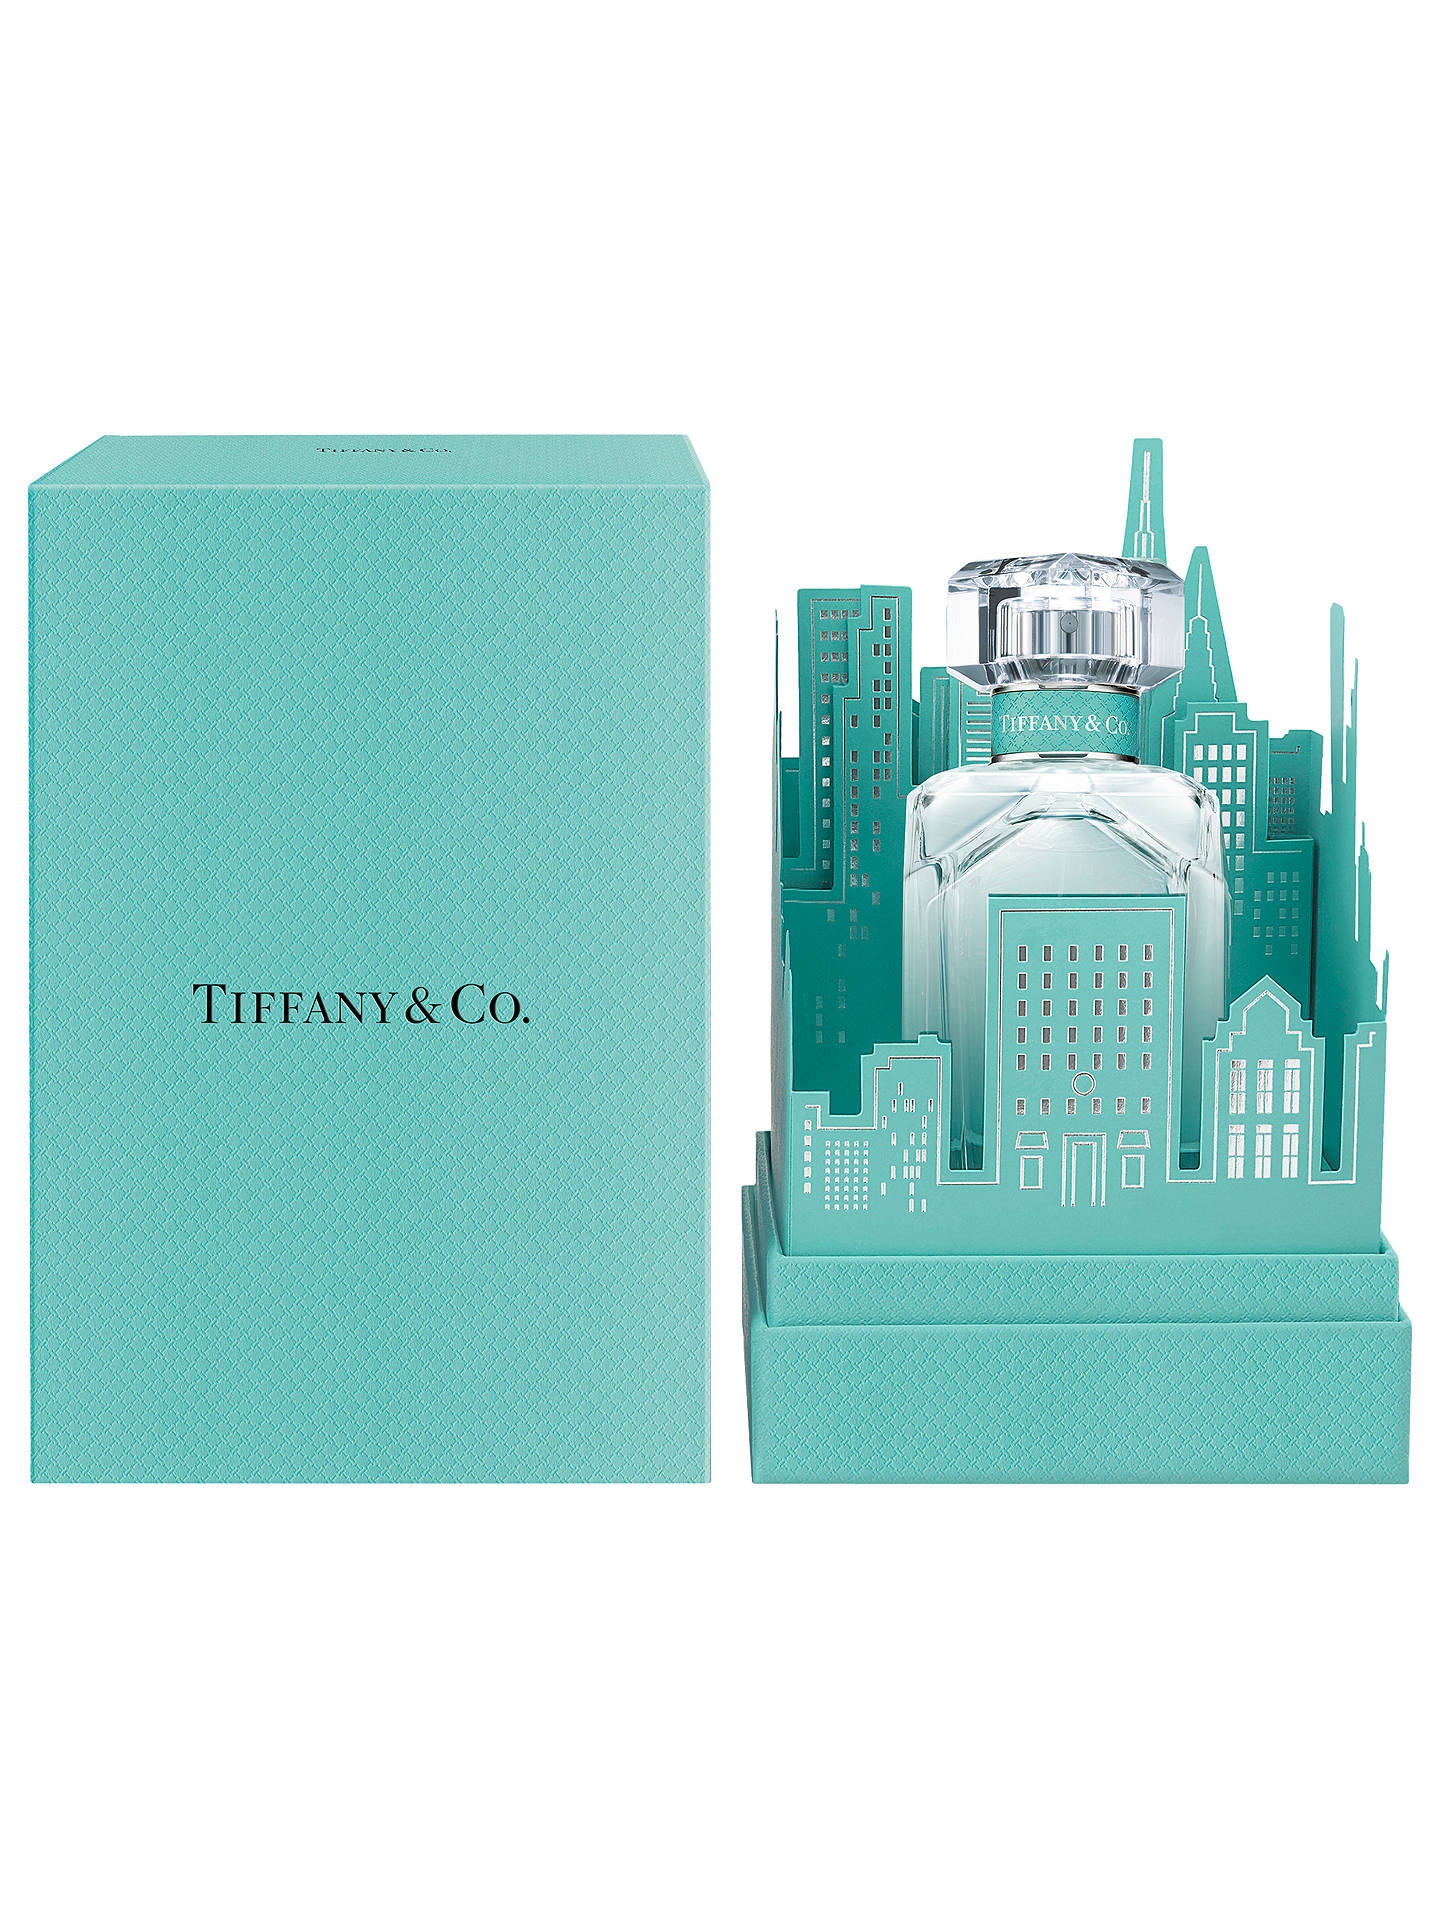 BuyTiffany & Co 75ml Eau de Parfum Skyline Fragrance Gift Set Online at johnlewis.com